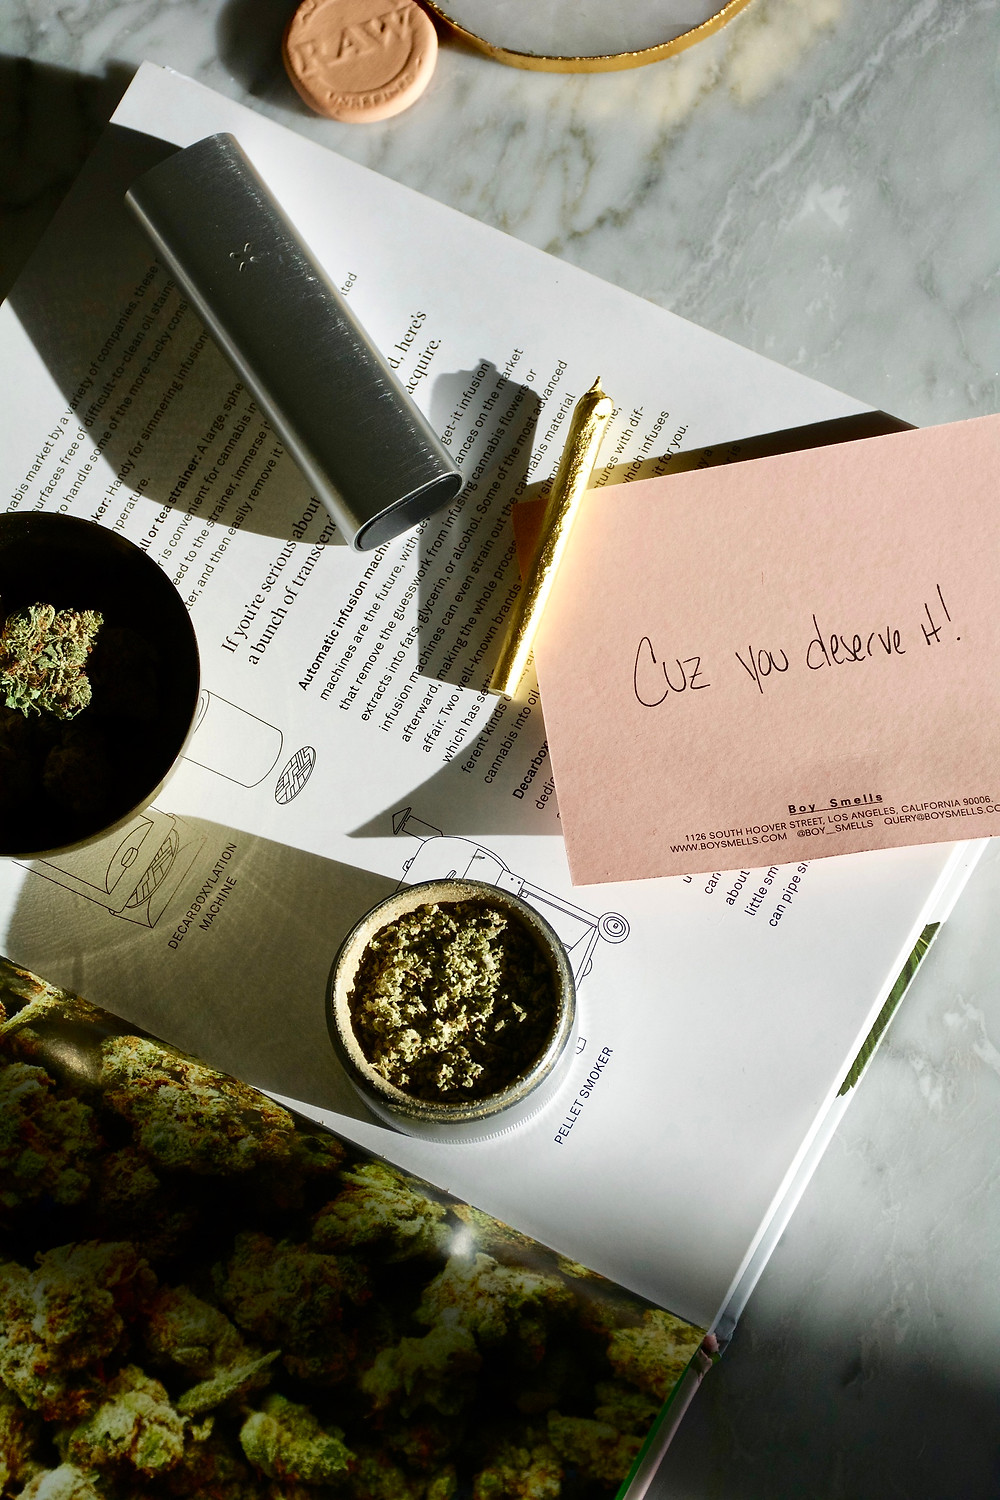 Plant-based wellness, The Wellness Edit, Weed, Cannabis, Boy Smells, Raw, Pax, Weed and Wellness, The Golden Edition, Clean Health, Healthy, How to be Healthy,